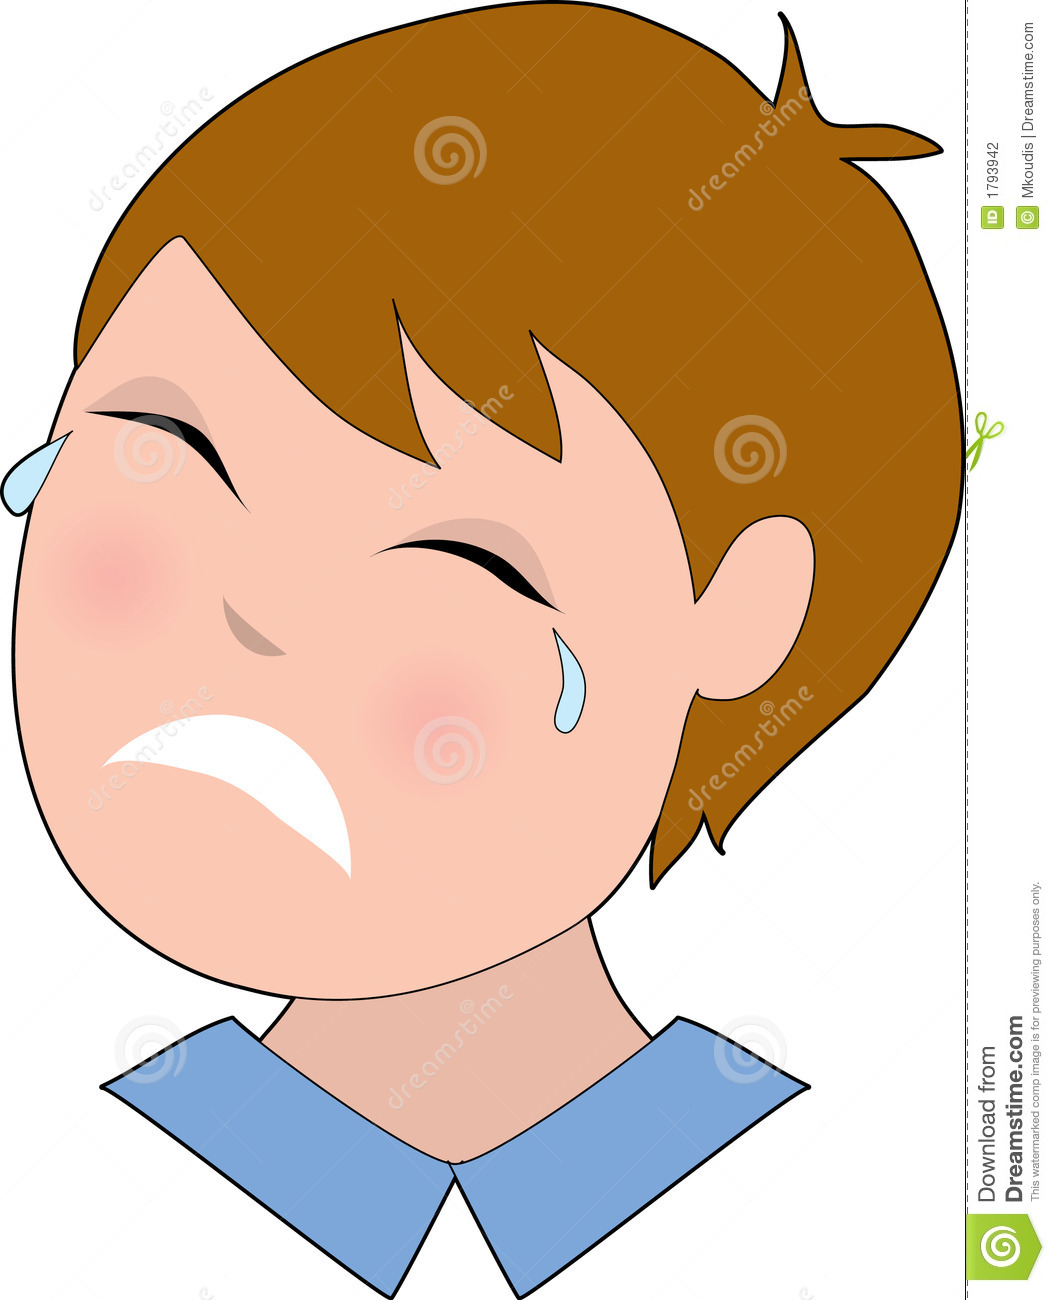 Man Crying Clipart.